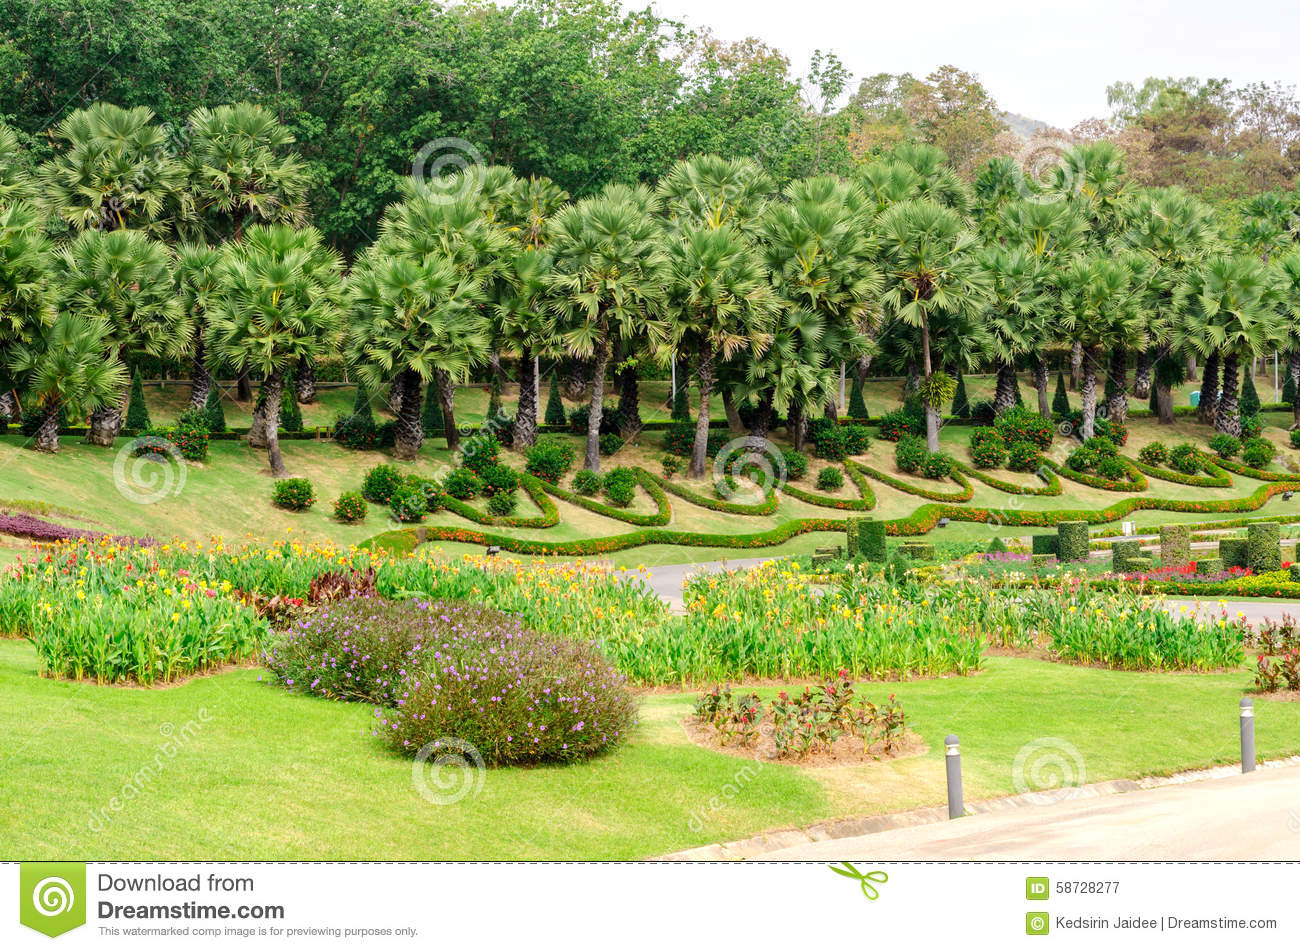 Garden Design Tropical tropical garden design. stock photo - image: 49927678